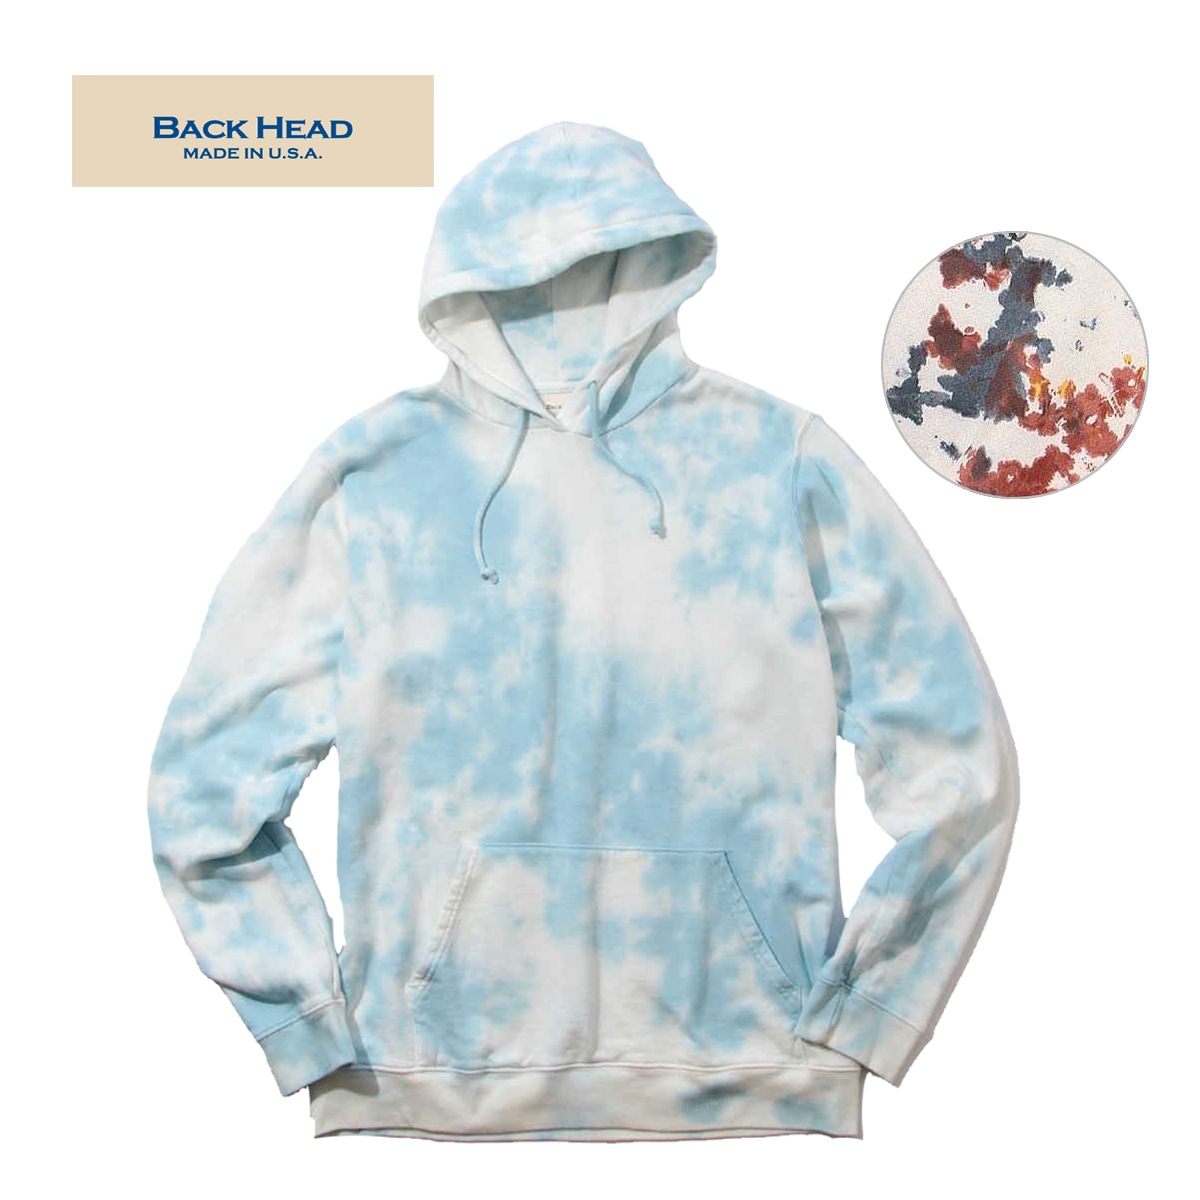 BACK HEAD バックヘッド MADE IN USA TYEDYE SWEAT P/O HOODIEBACK HEAD バックヘッド MADE IN USA TYEDYE SWEAT P/O HOODIE